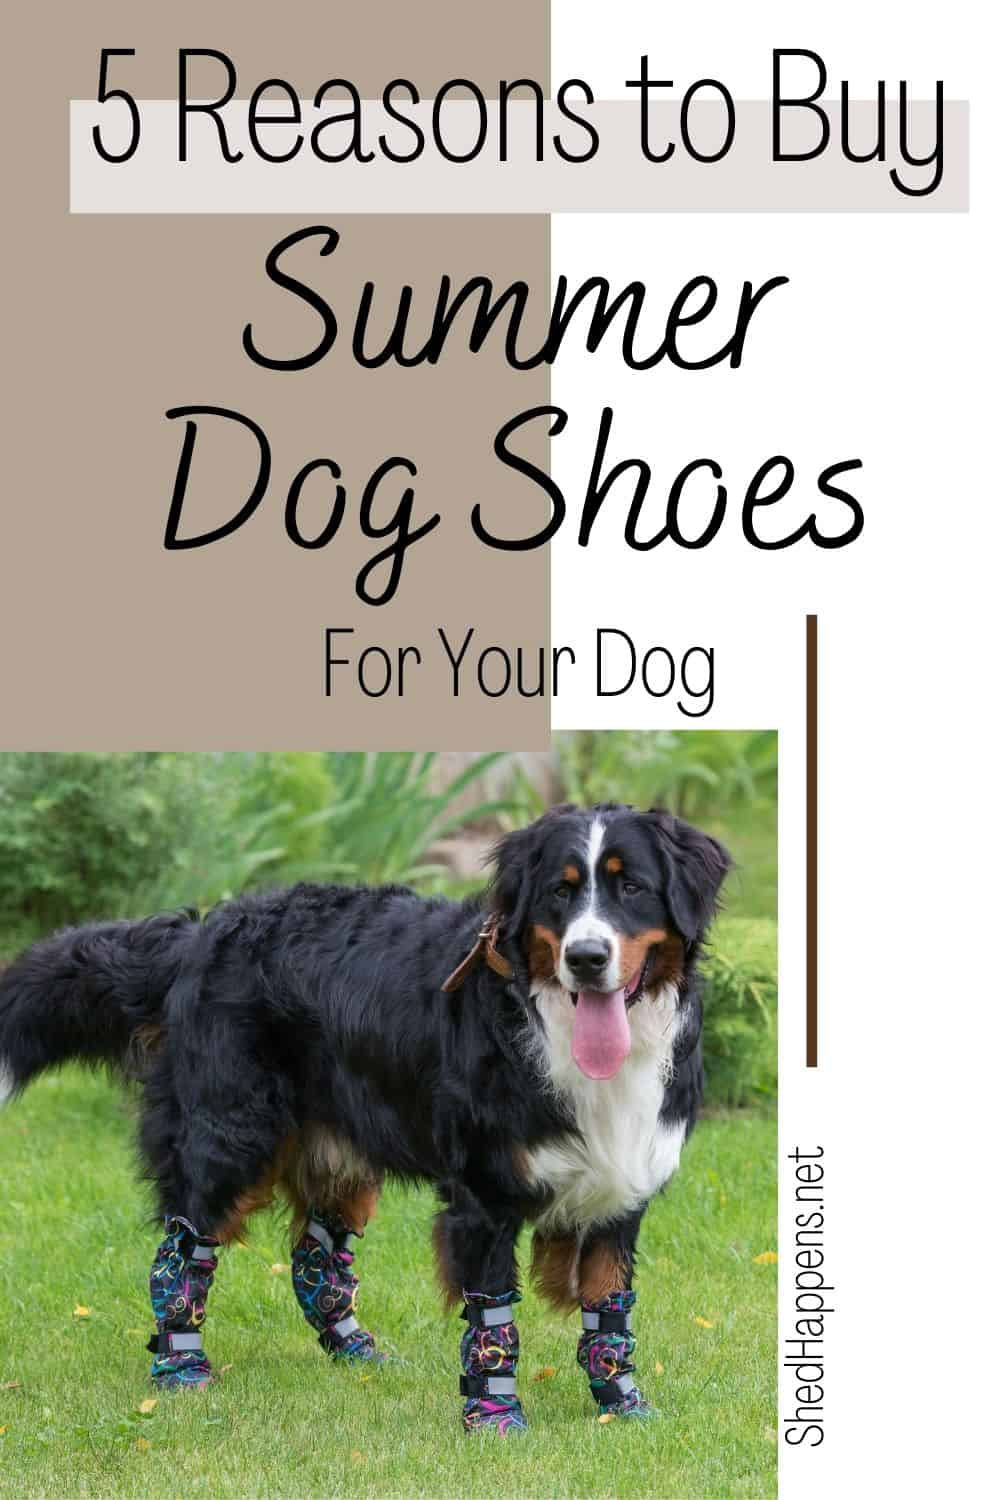 A Burnese Mountain Dog standing outside in the grass, wearing black and neon-coloured dog boots with its tongue hanging out of its mouth. Text announces 5 reasons to buy summer dog shoes for your dog.